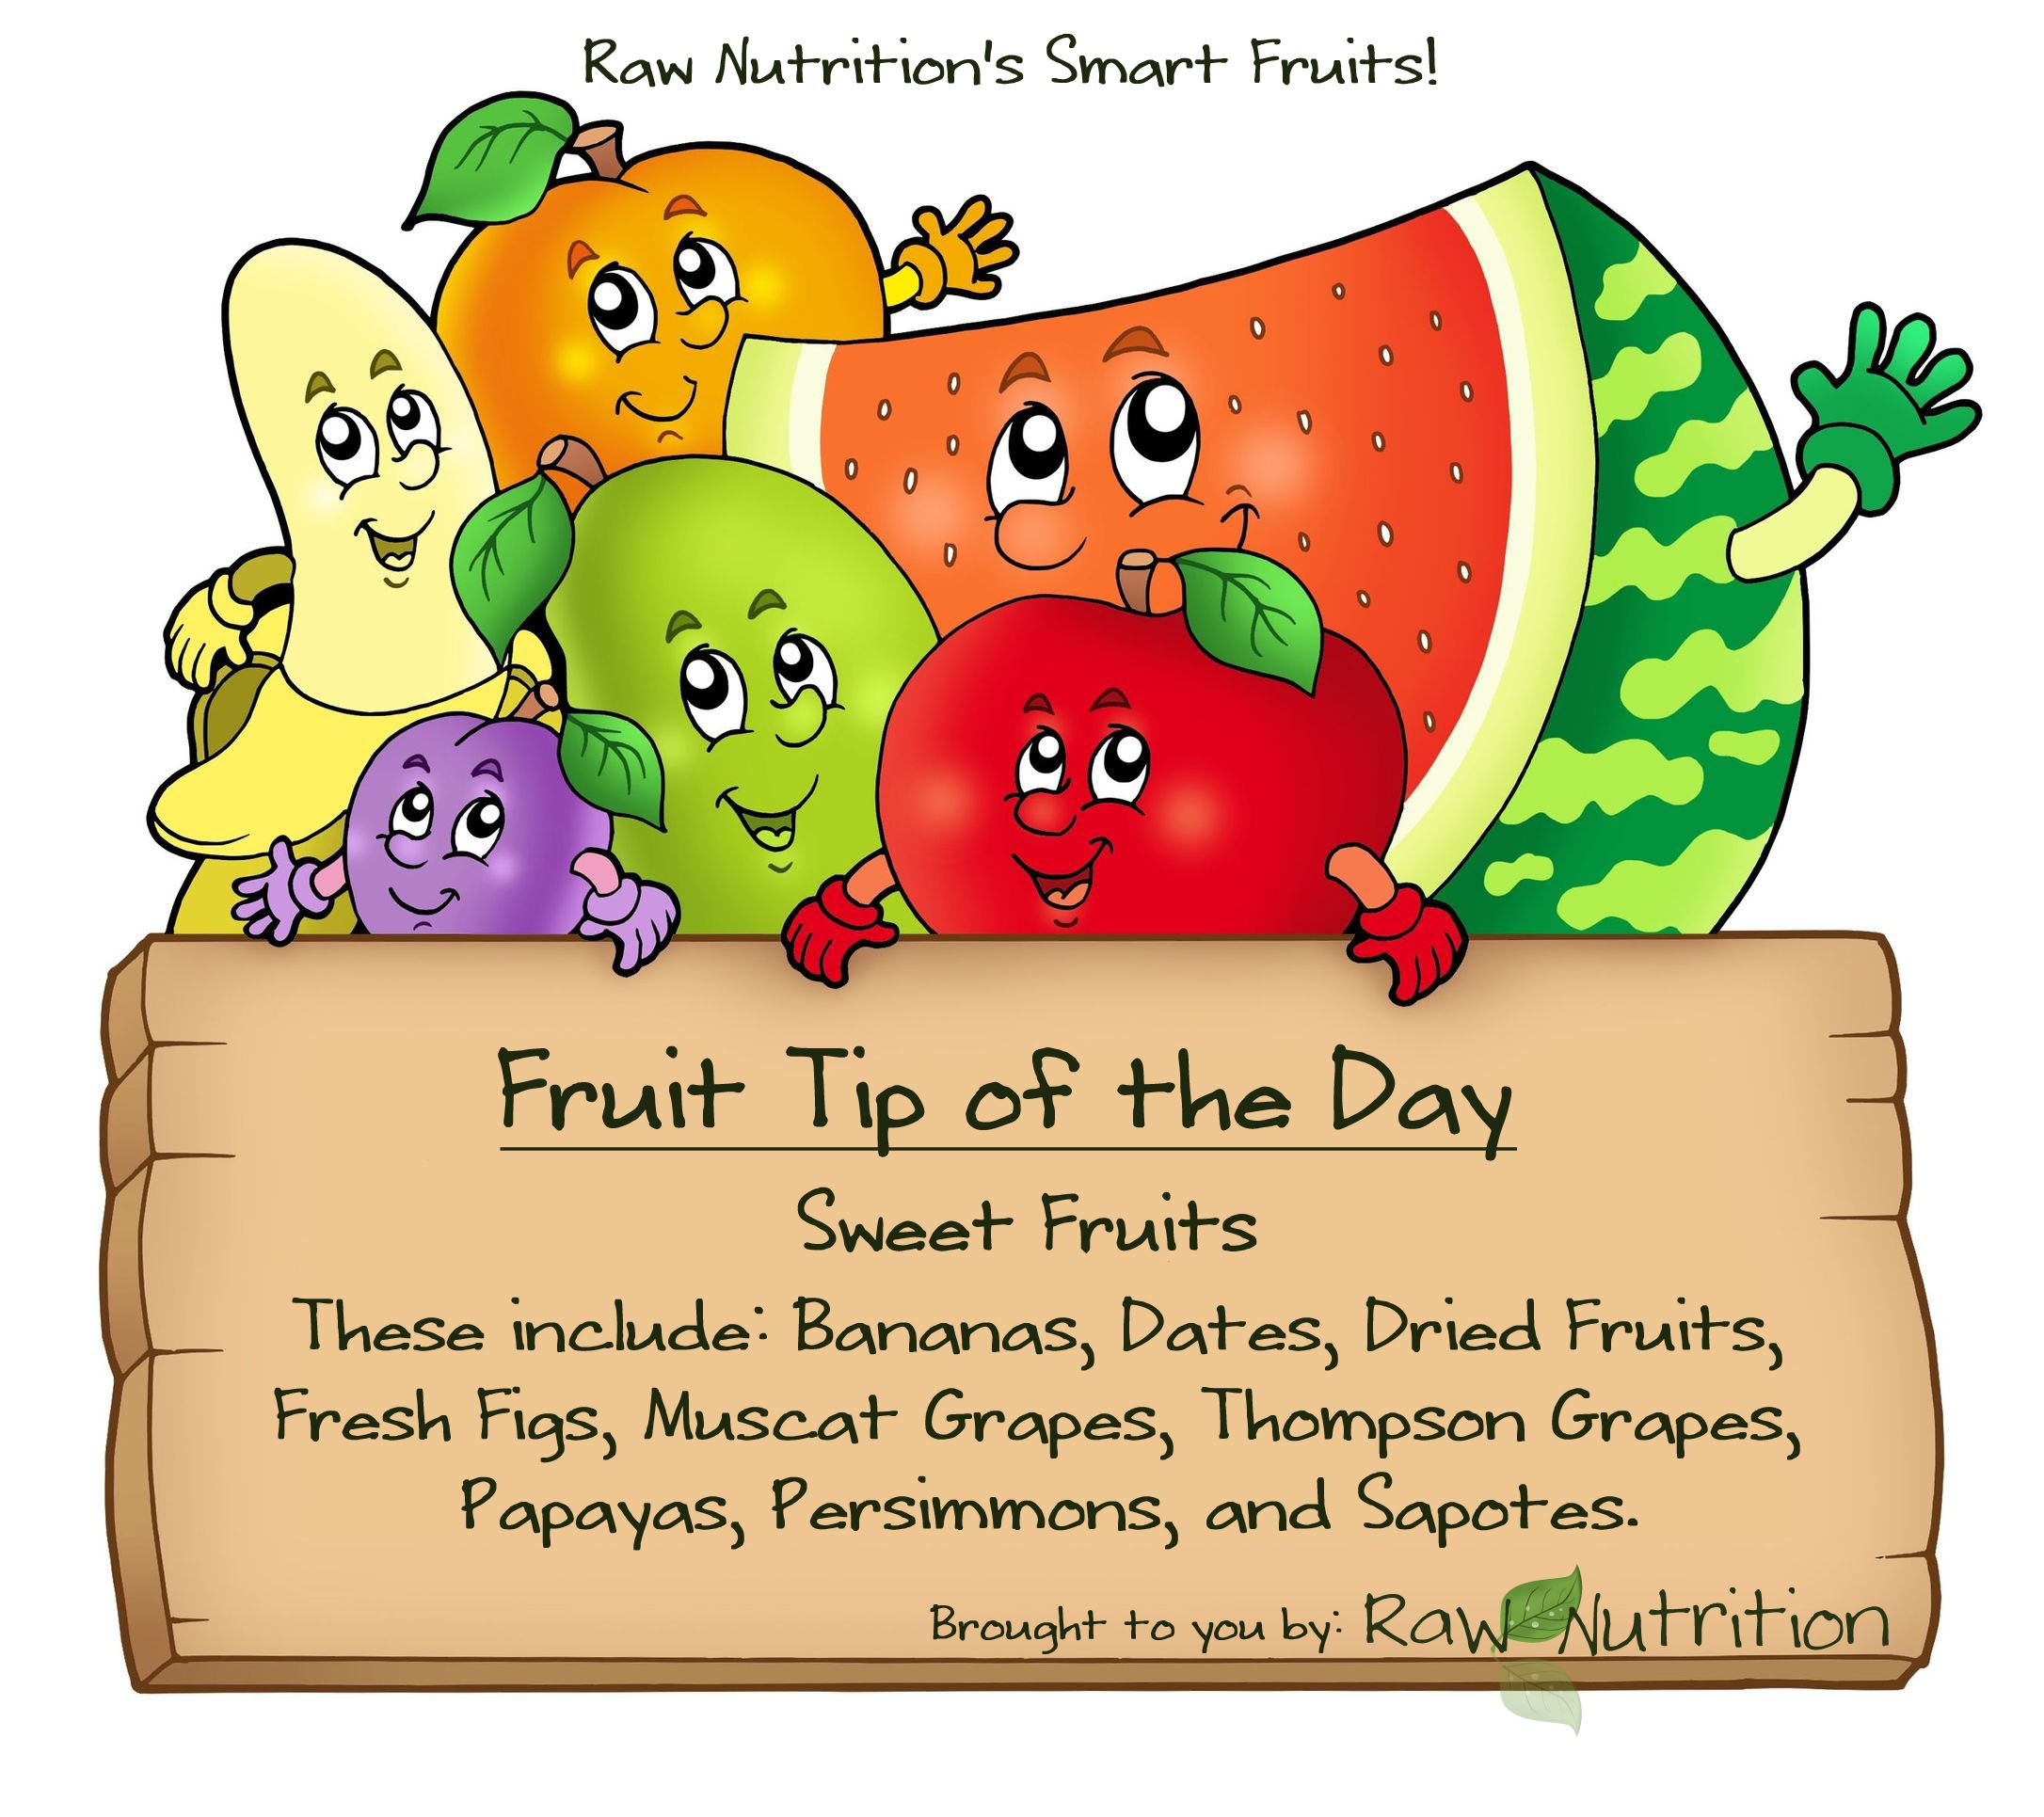 Fruit tip of the day!